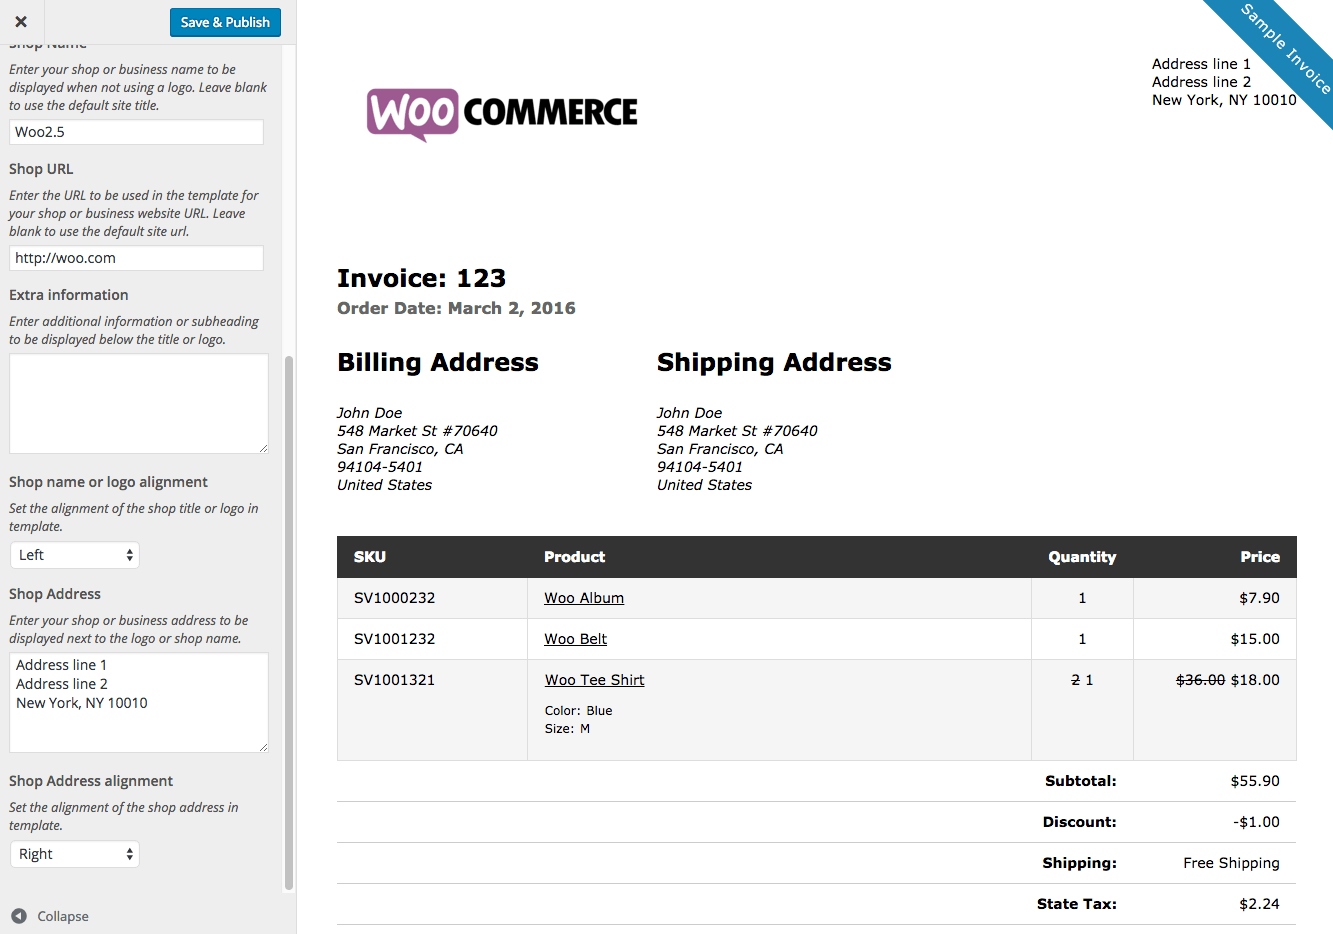 Coachoutletonlineplusus  Mesmerizing Print Invoices Amp Packing Lists  Woocommerce With Heavenly Woocommerce Print Invoices  Packing Lists Customizer With Cute Constructive Receipts Also Create Receipt Online Free In Addition How Long To Keep Bills And Receipts And Automotive Receipt Template As Well As Online Receipts Free Additionally Income Receipts From Woocommercecom With Coachoutletonlineplusus  Heavenly Print Invoices Amp Packing Lists  Woocommerce With Cute Woocommerce Print Invoices  Packing Lists Customizer And Mesmerizing Constructive Receipts Also Create Receipt Online Free In Addition How Long To Keep Bills And Receipts From Woocommercecom